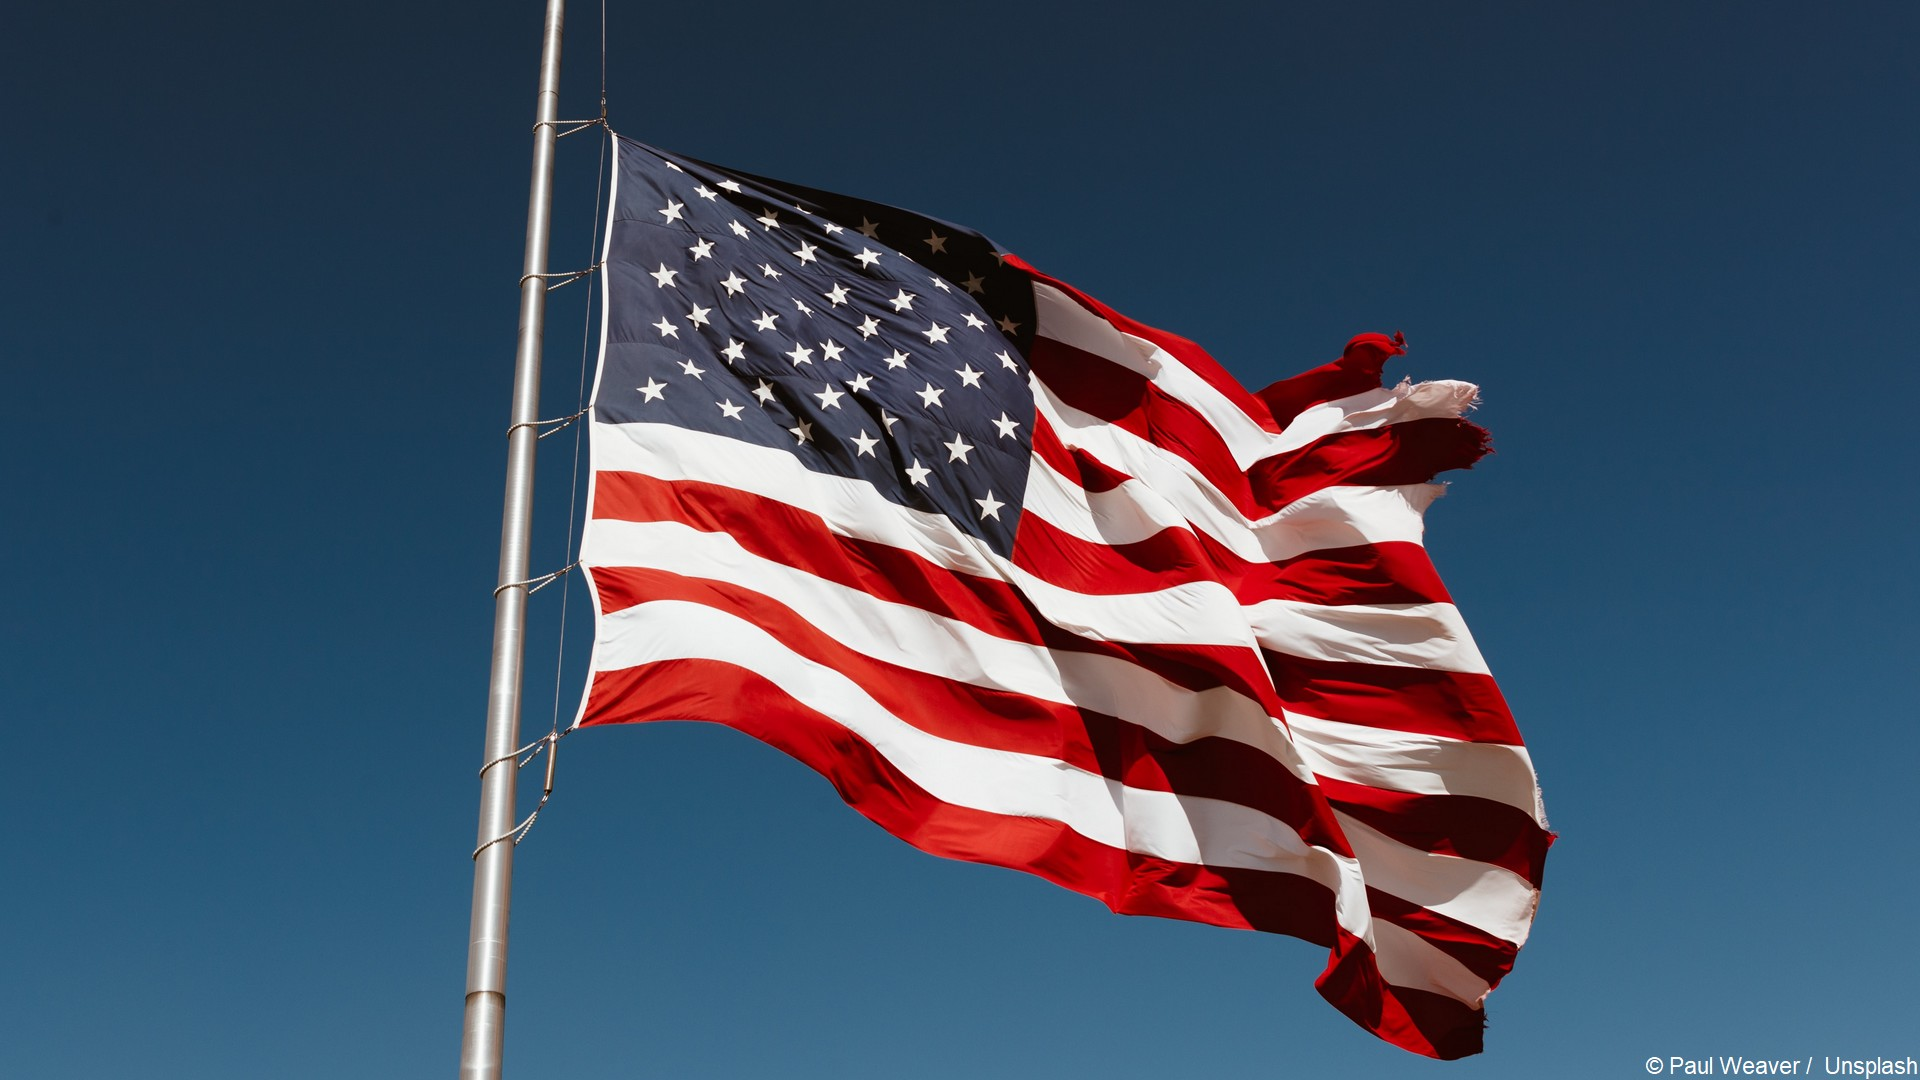 Drapeau – Etats-Unis (c) Paul Weaver Unsplash